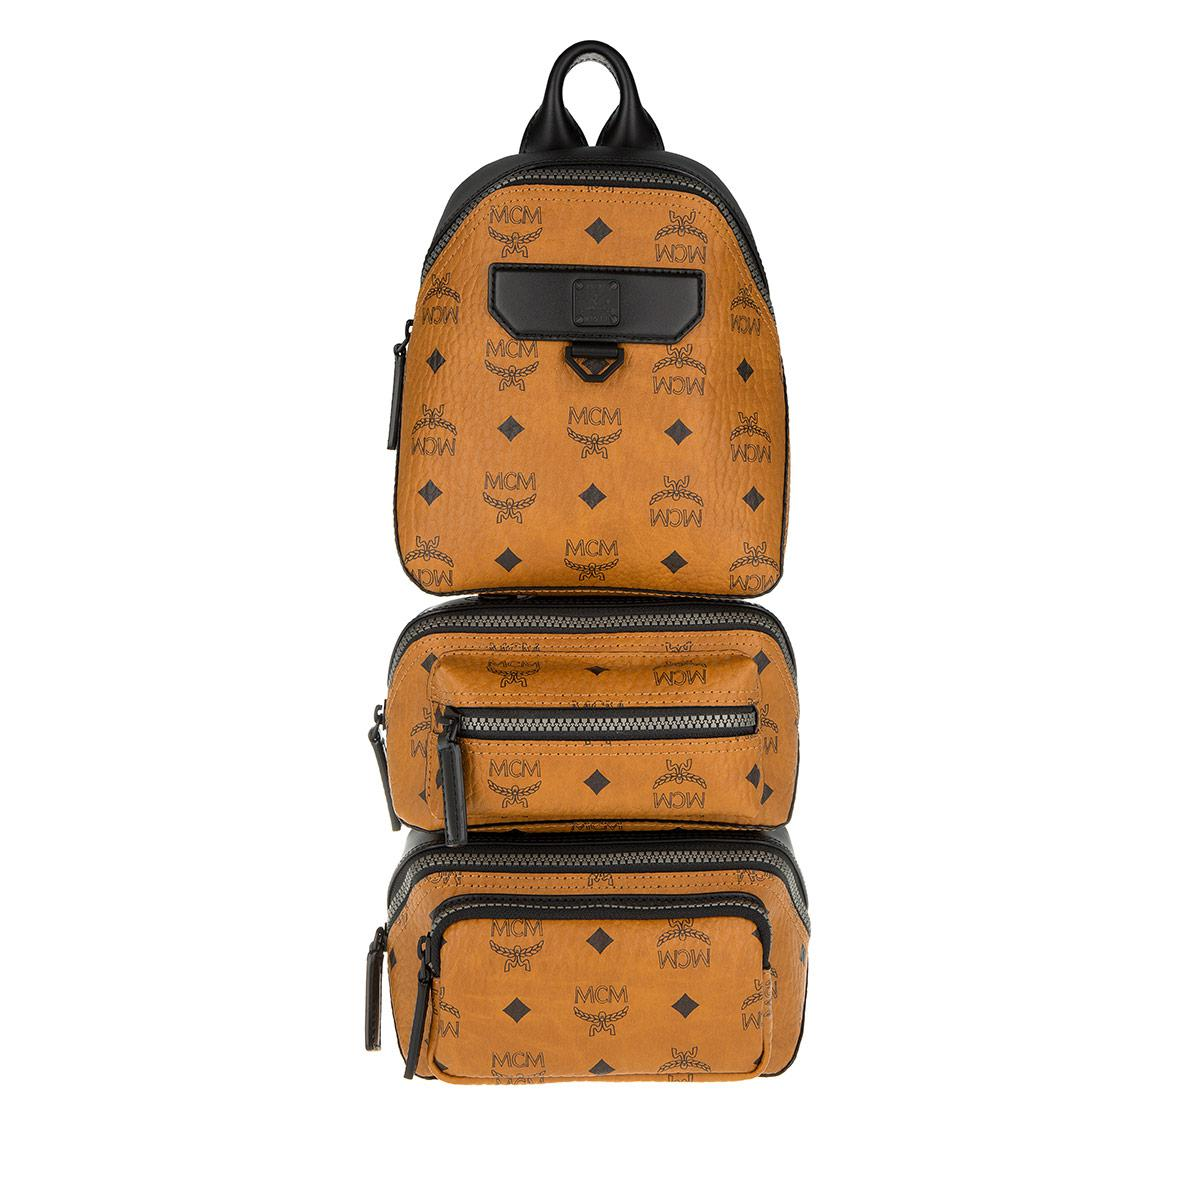 d6483455e1 Mcm Small Sling Backpack | Building Materials Bargain Center